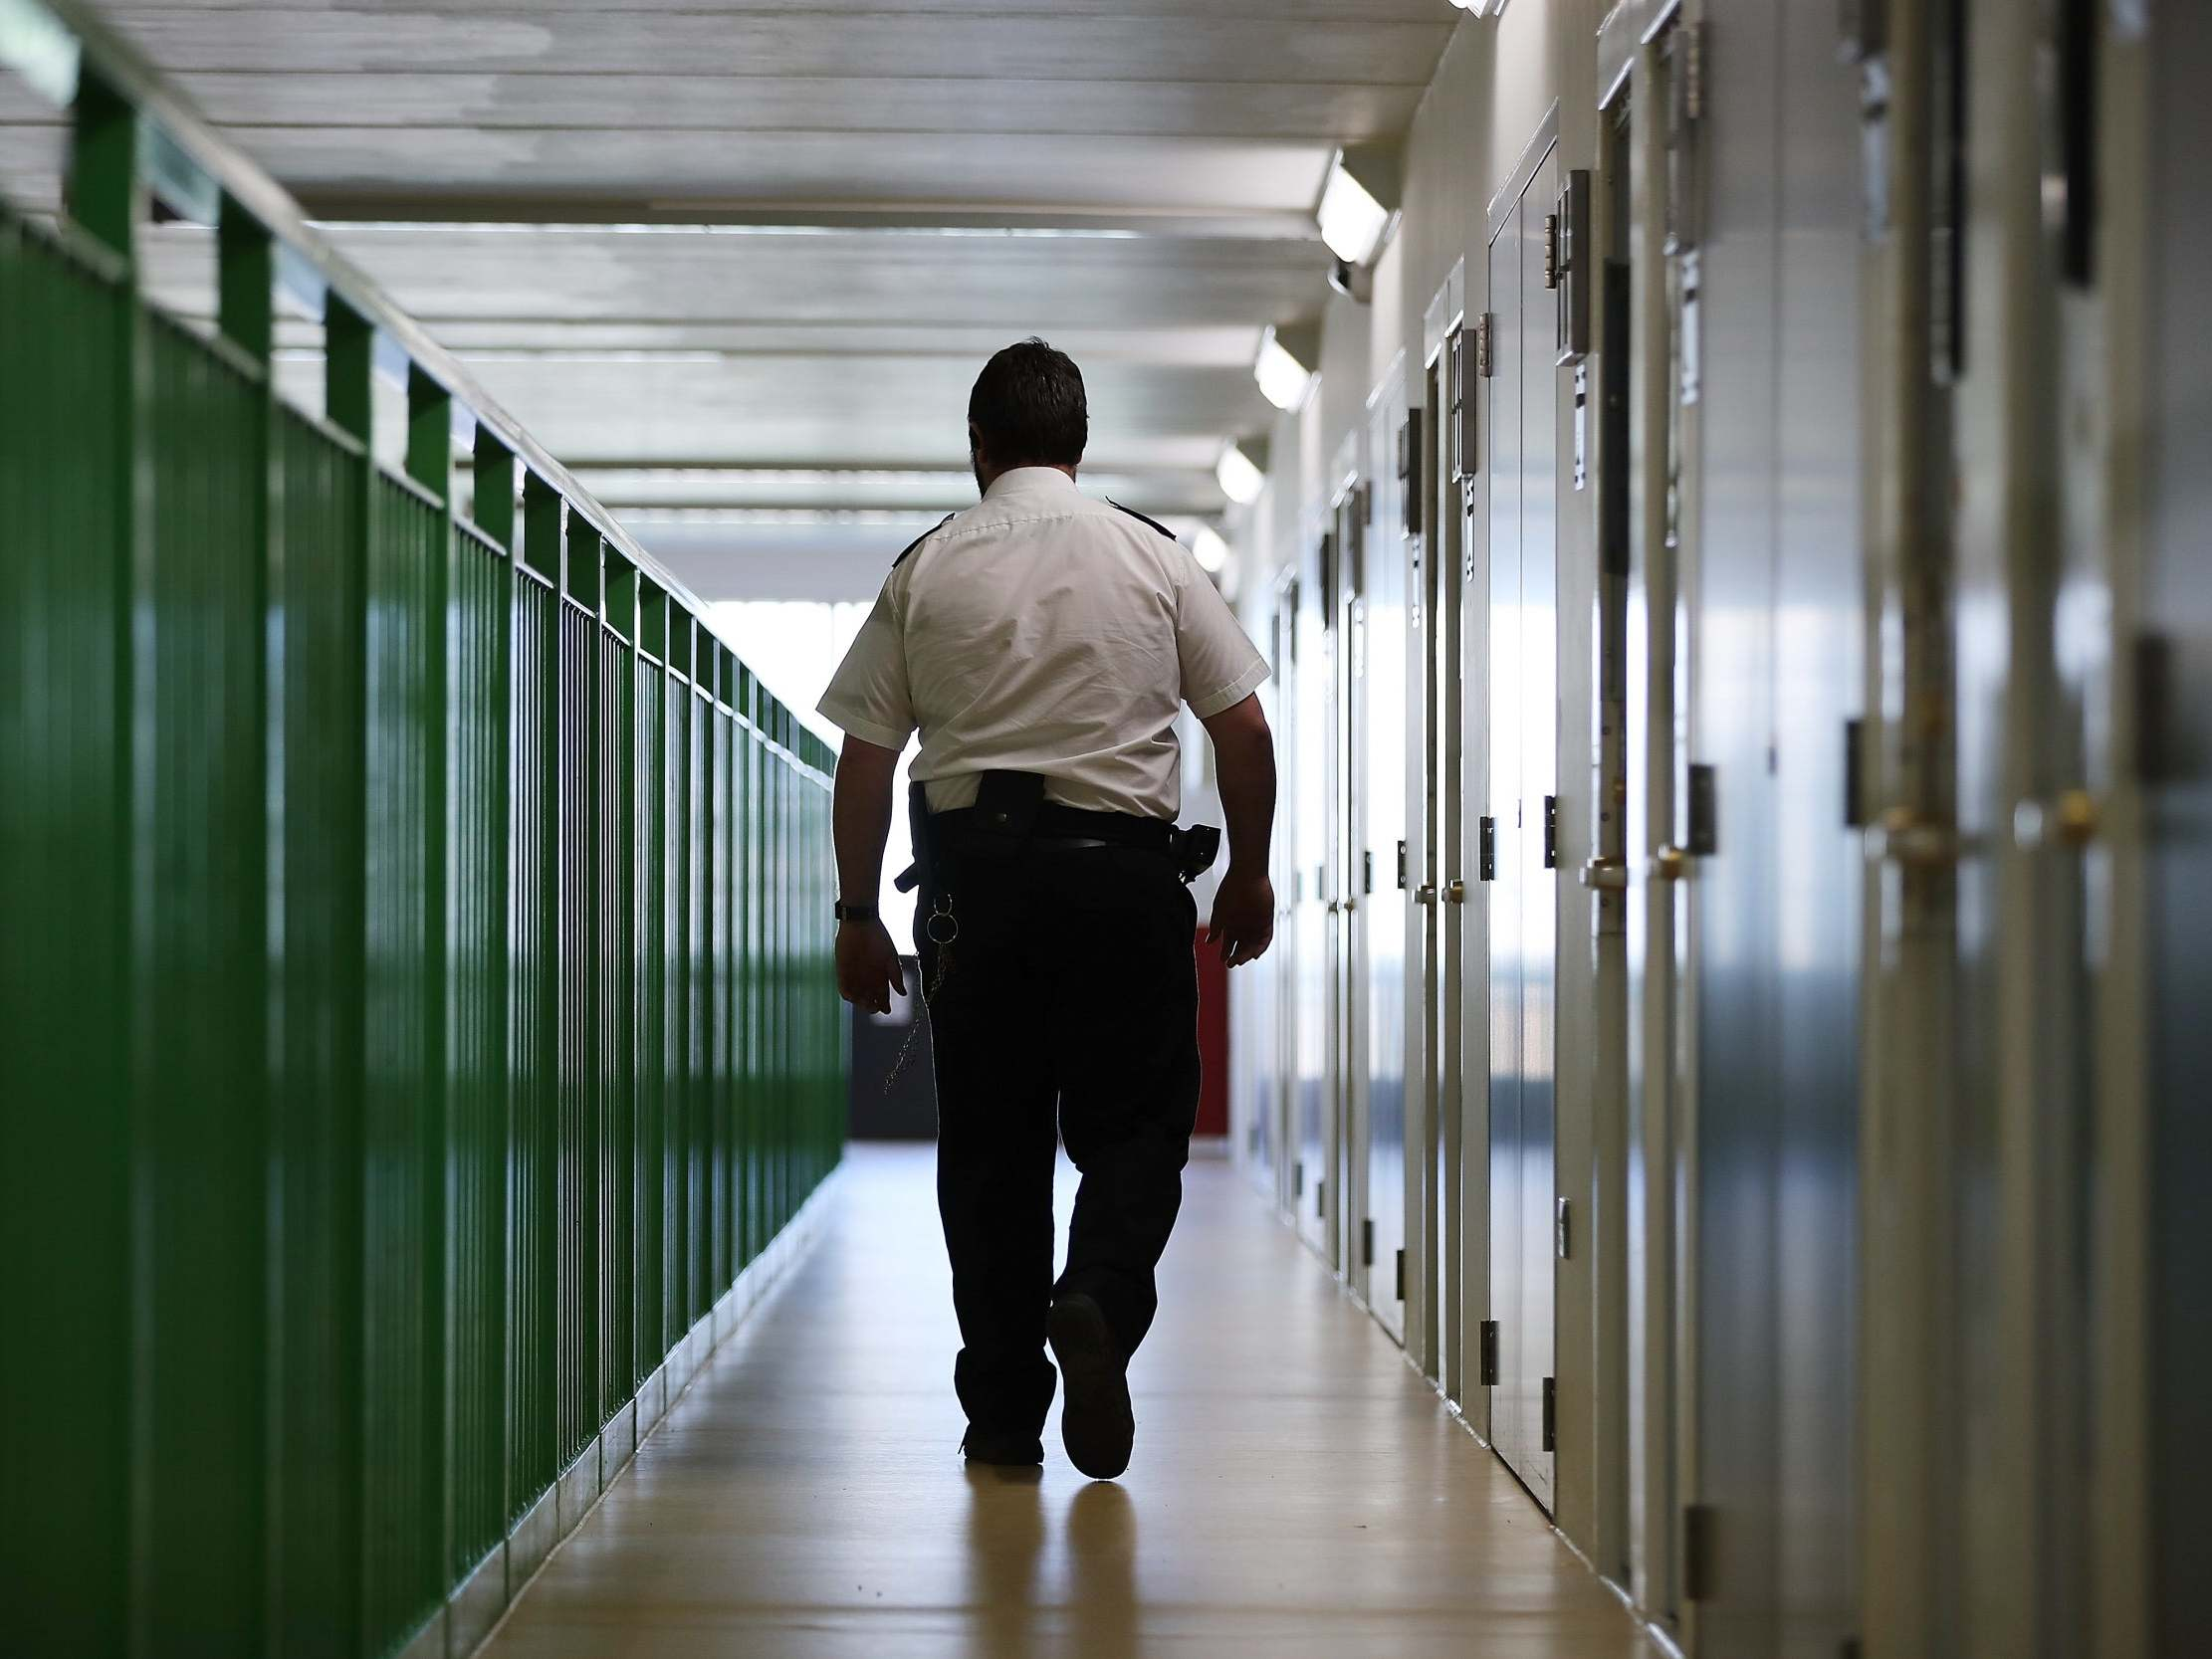 The UK and US are still indulging in the barbaric practice of handing children adult prison sentences